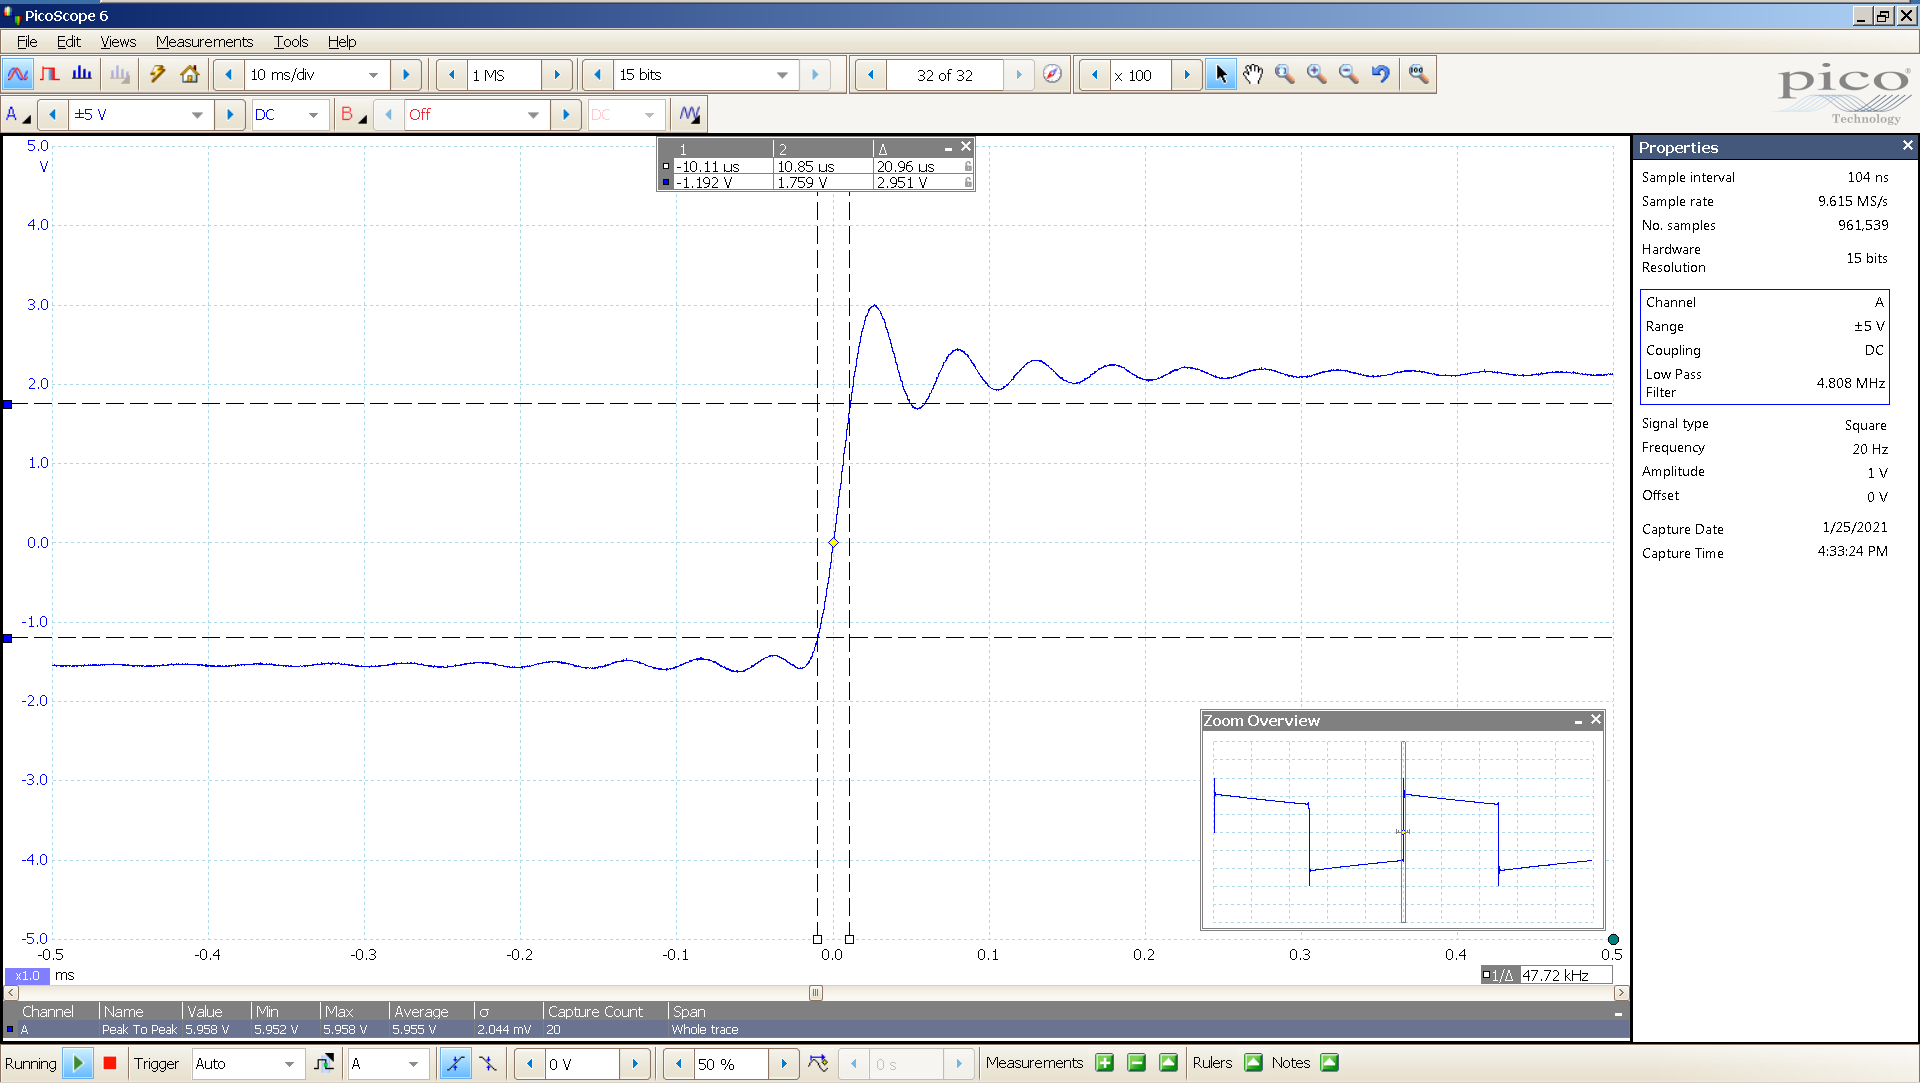 02 20210125 dac2541 20 Hz square 3682mVpp 100uS div 5MHz filter AES SE Mix BW calc.png